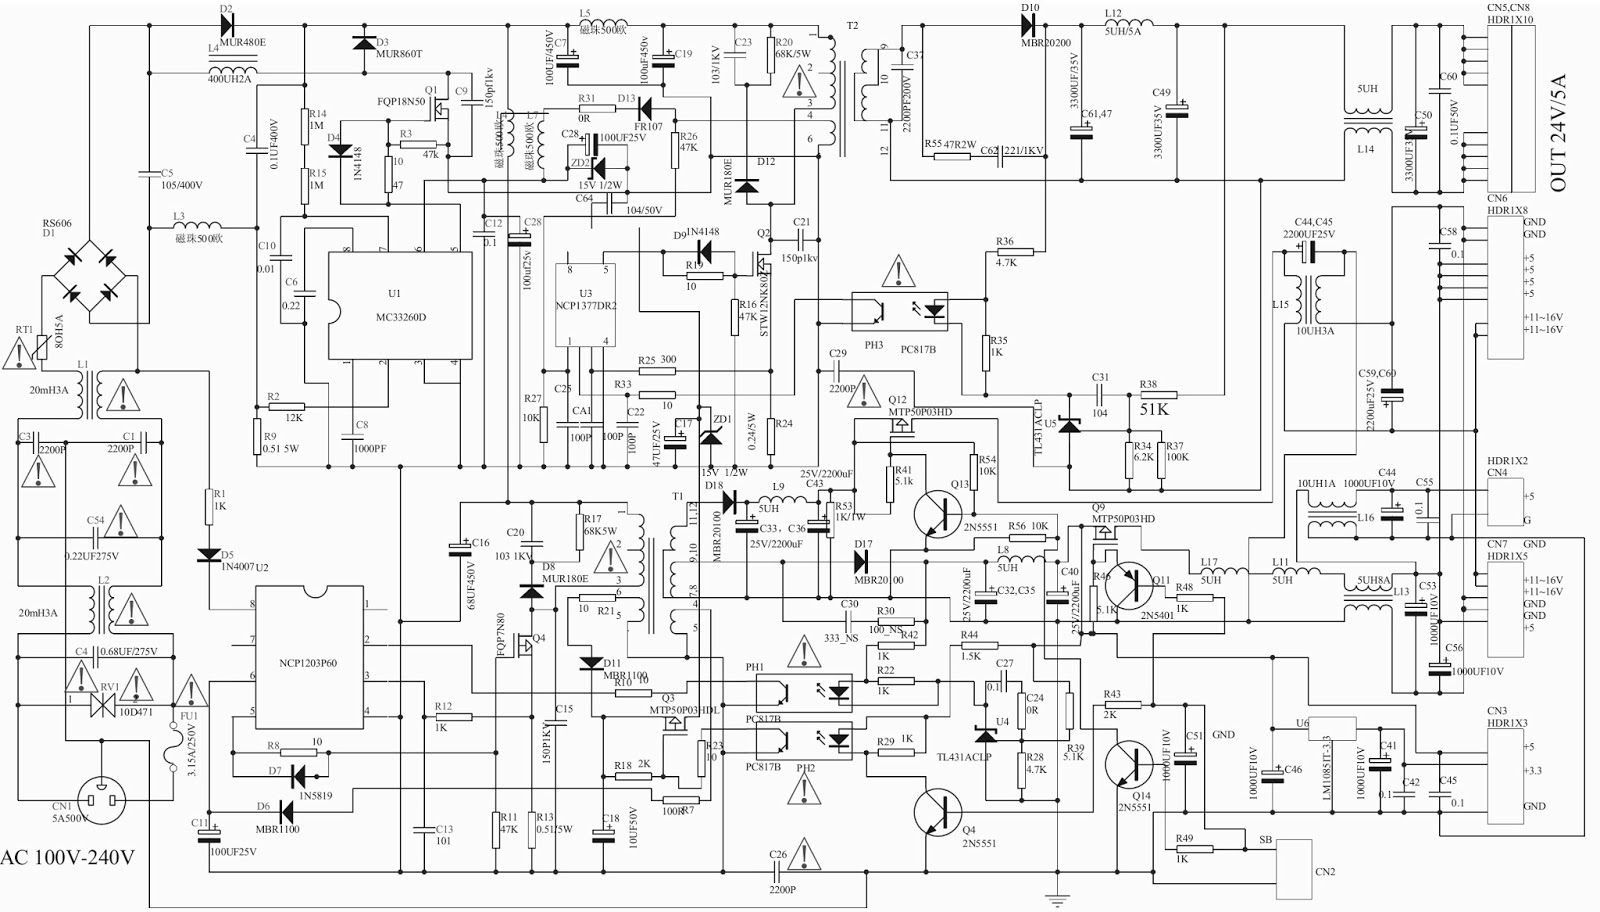 Akai Lta 27a901 Main Power Supply Smps on ac dc electronics power supply circuit diagram